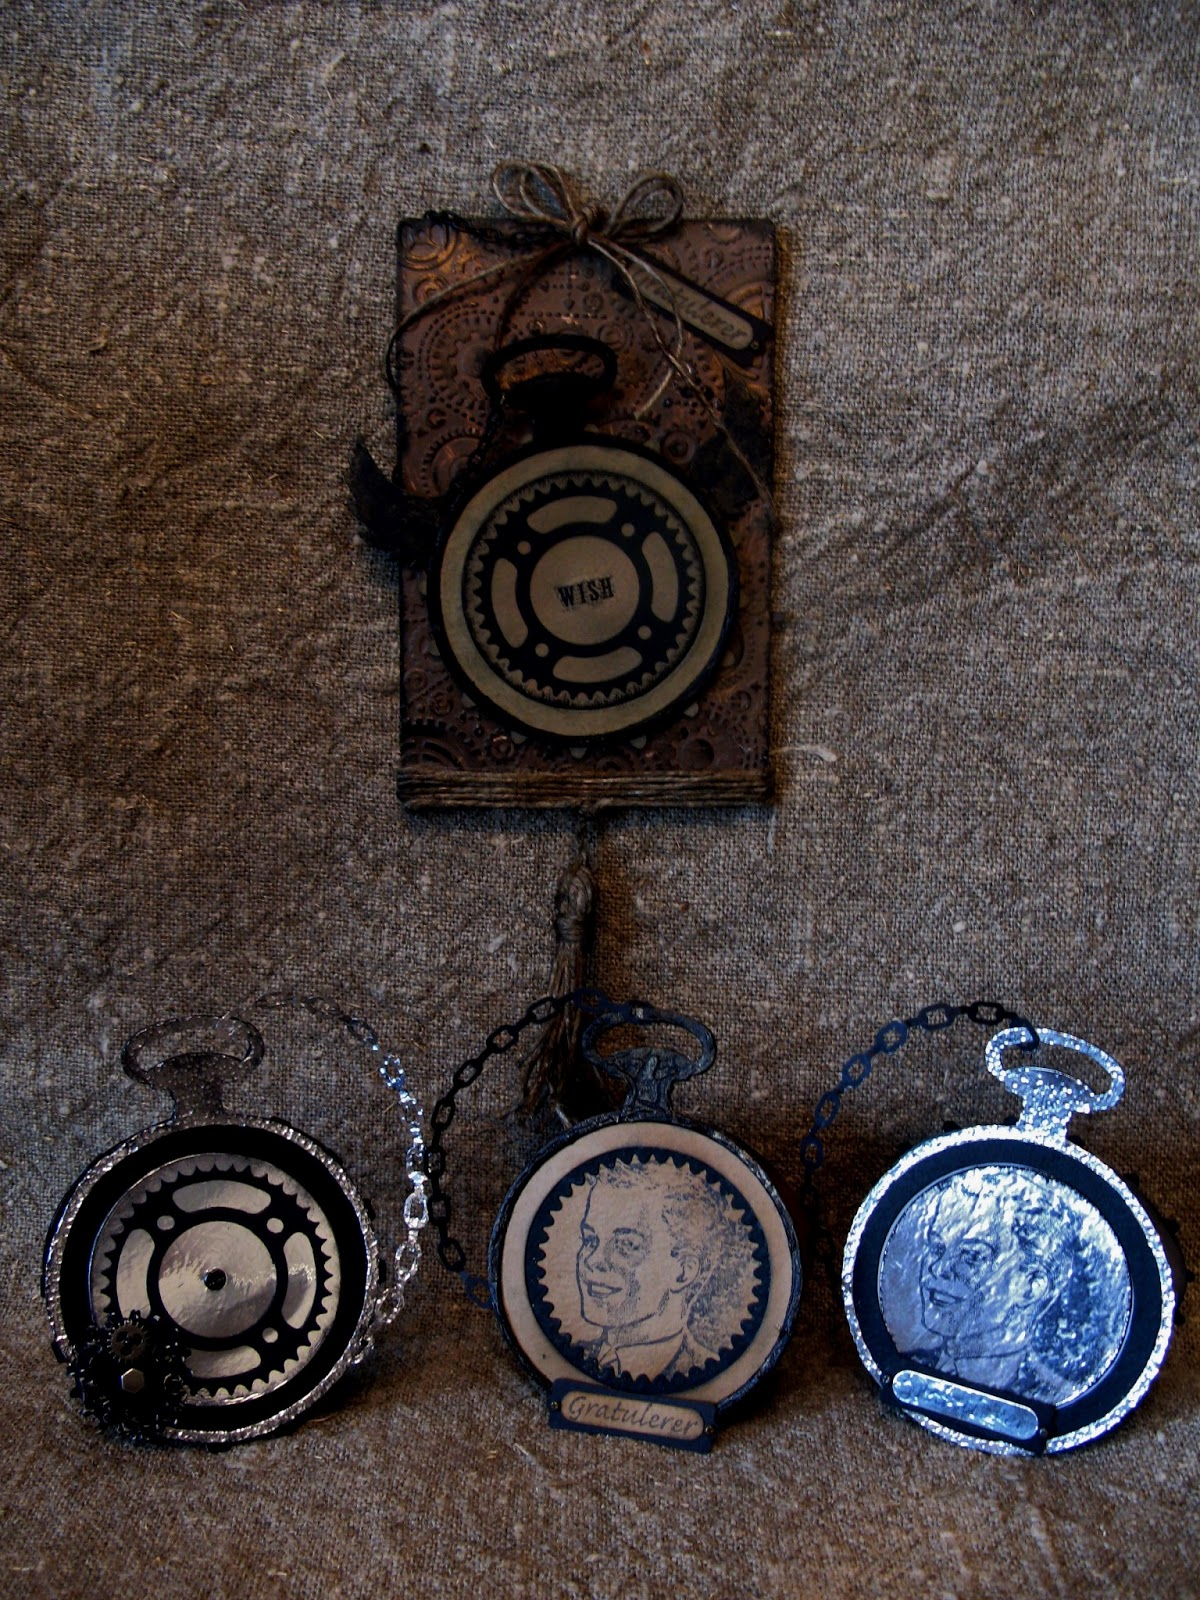 annes papercreations: Tim Holtz Pocket watch cards and grunge tag card